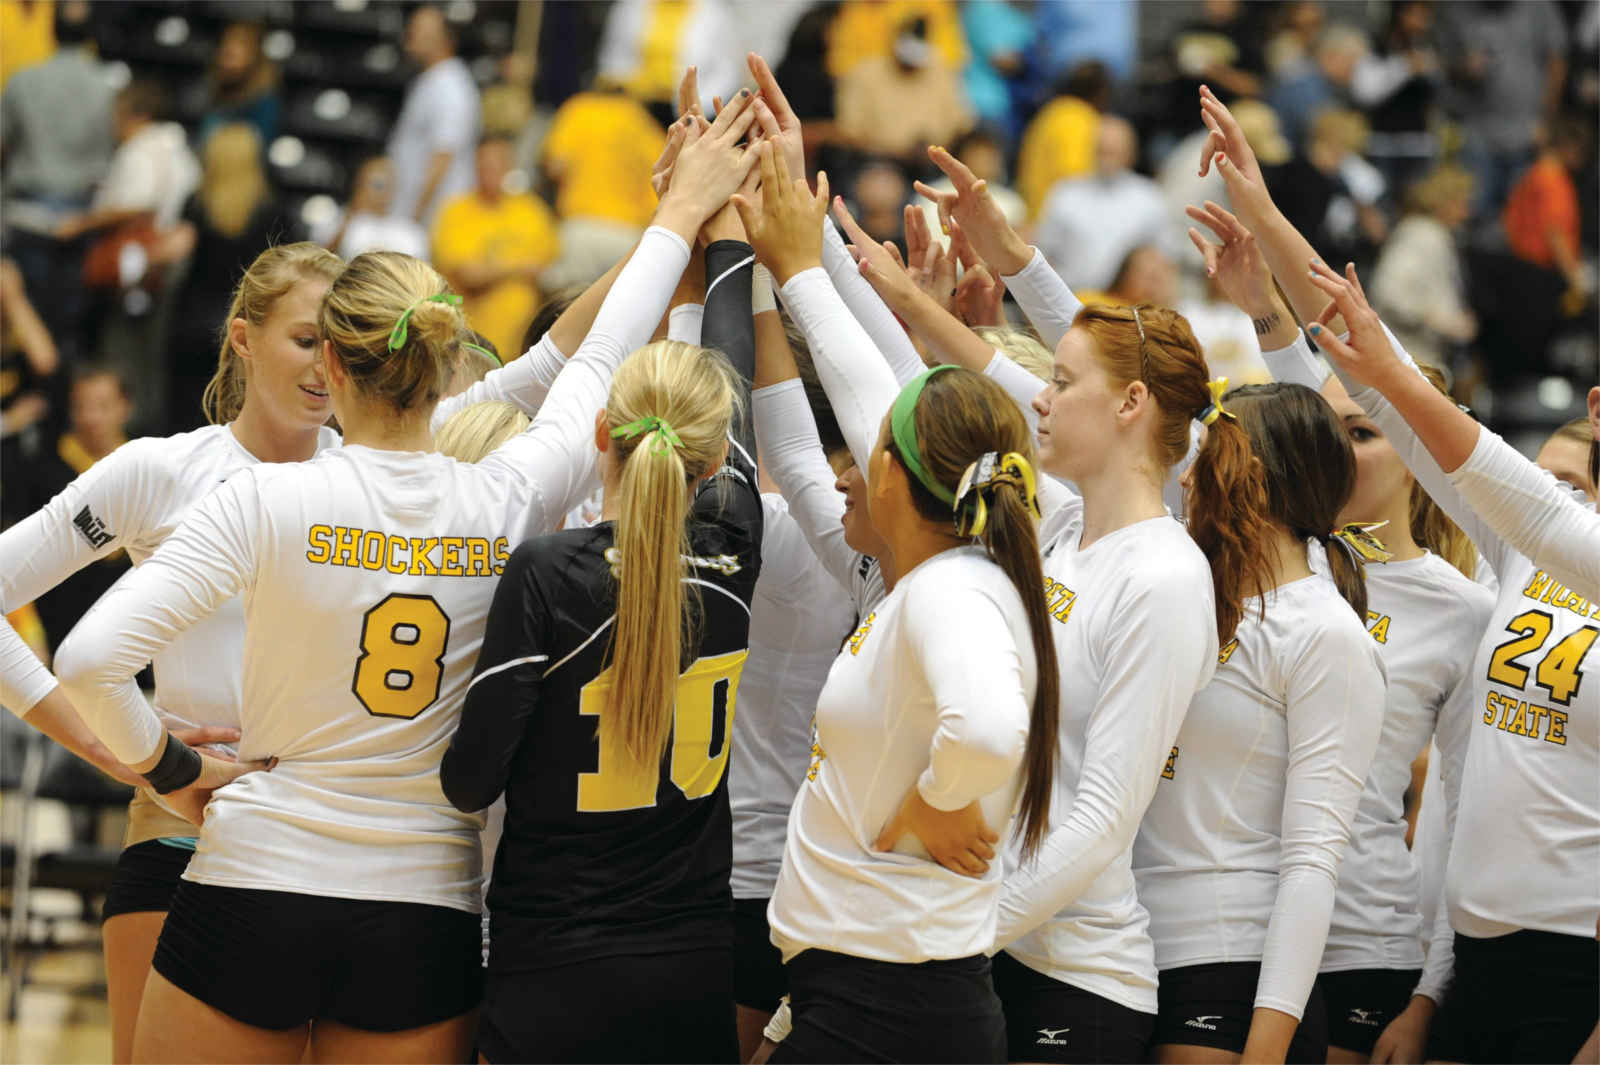 Shocker women's volleyball